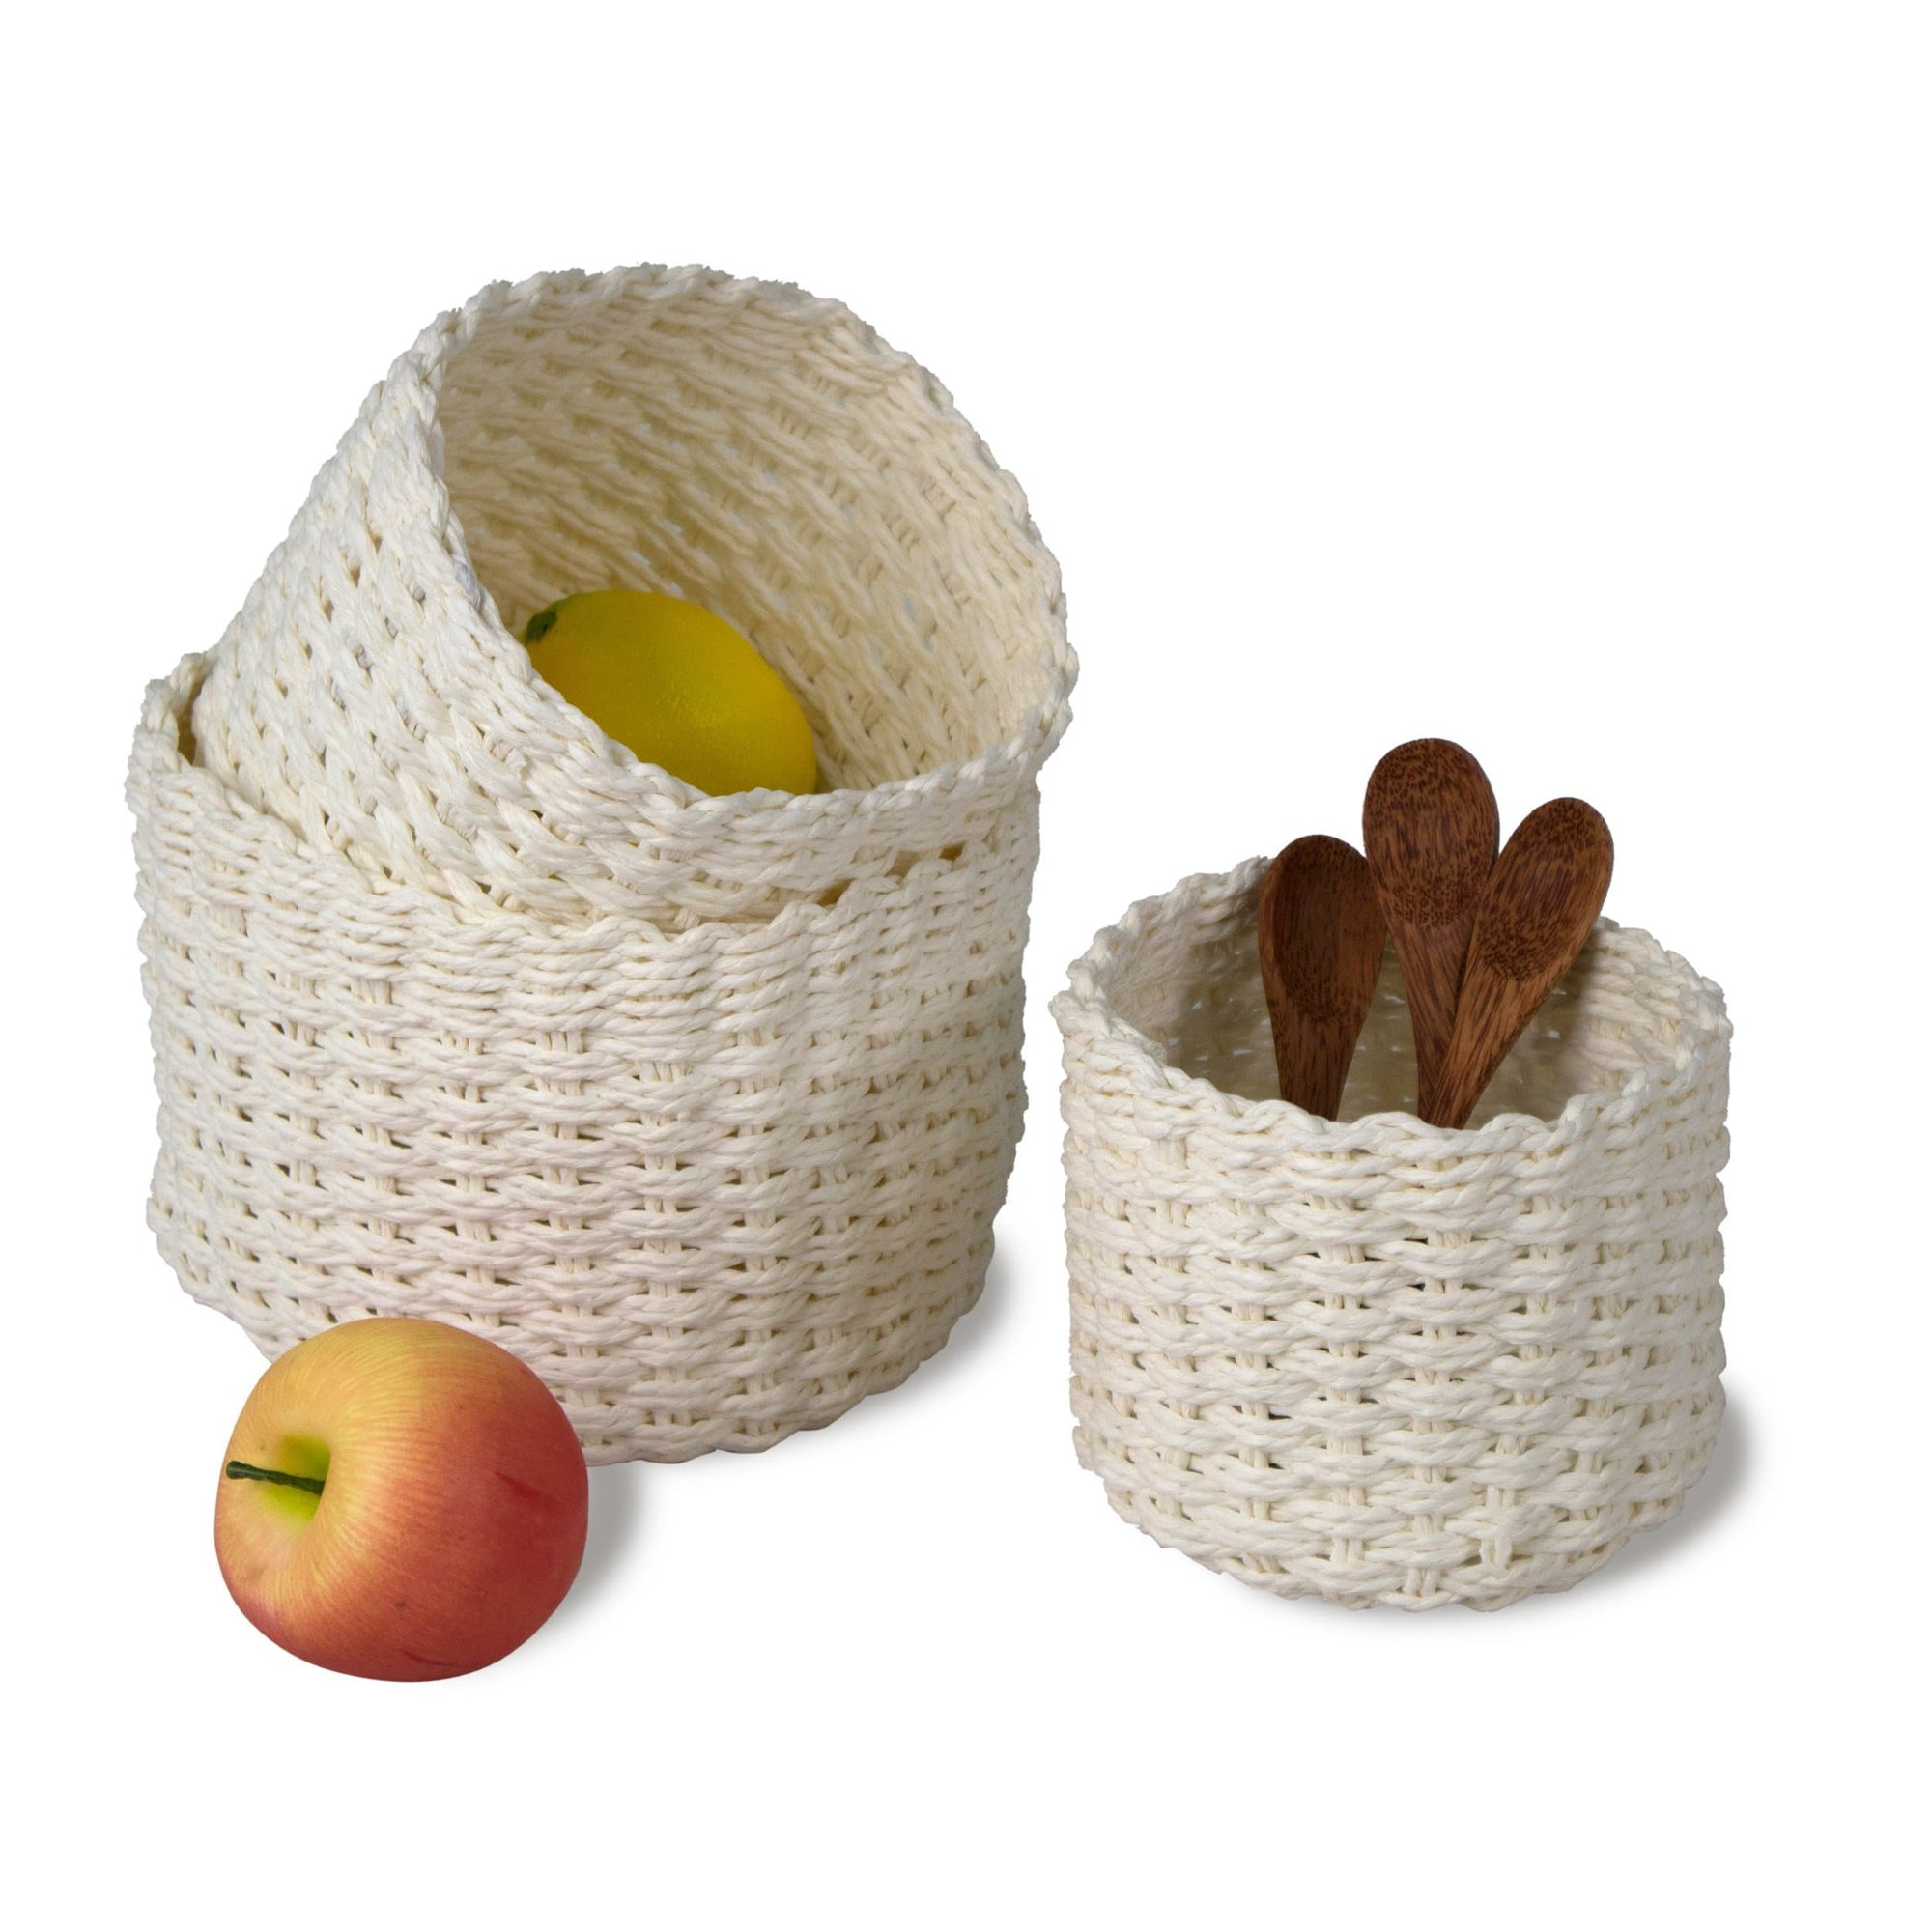 Made Terra Storage basket White Wicker Baskets for Bathroom, Kitchen and Home Decor | Wire Woven Closet Storage (Set 3)